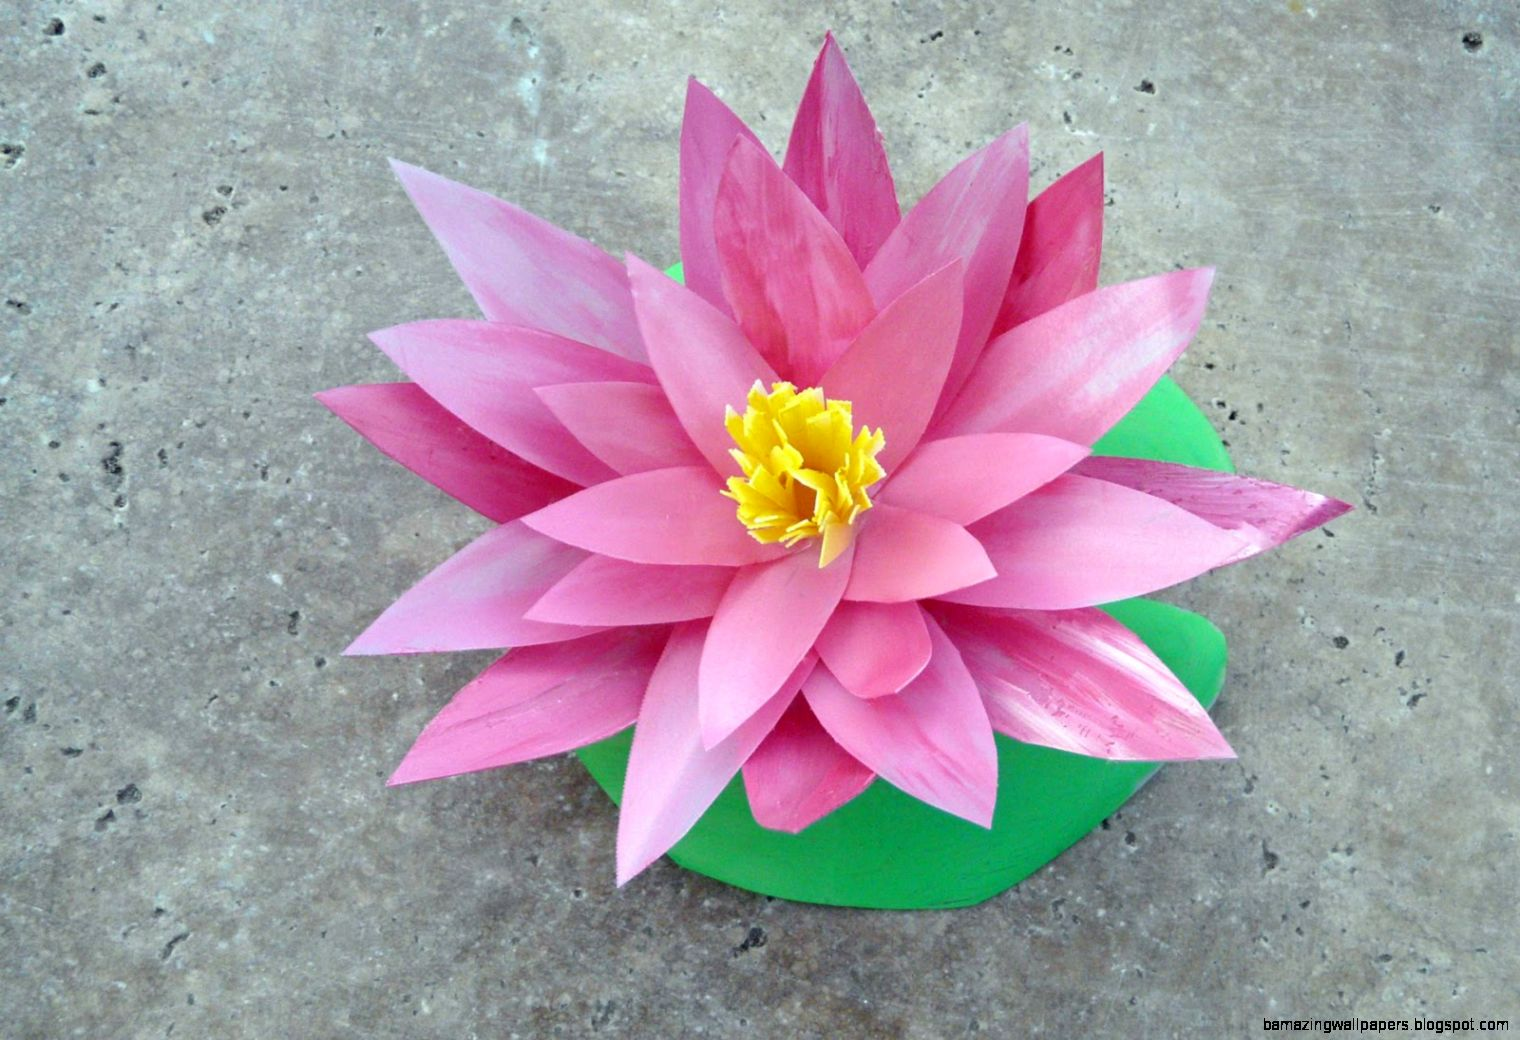 Lily pad flower template amazing wallpapers view original size izmirmasajfo